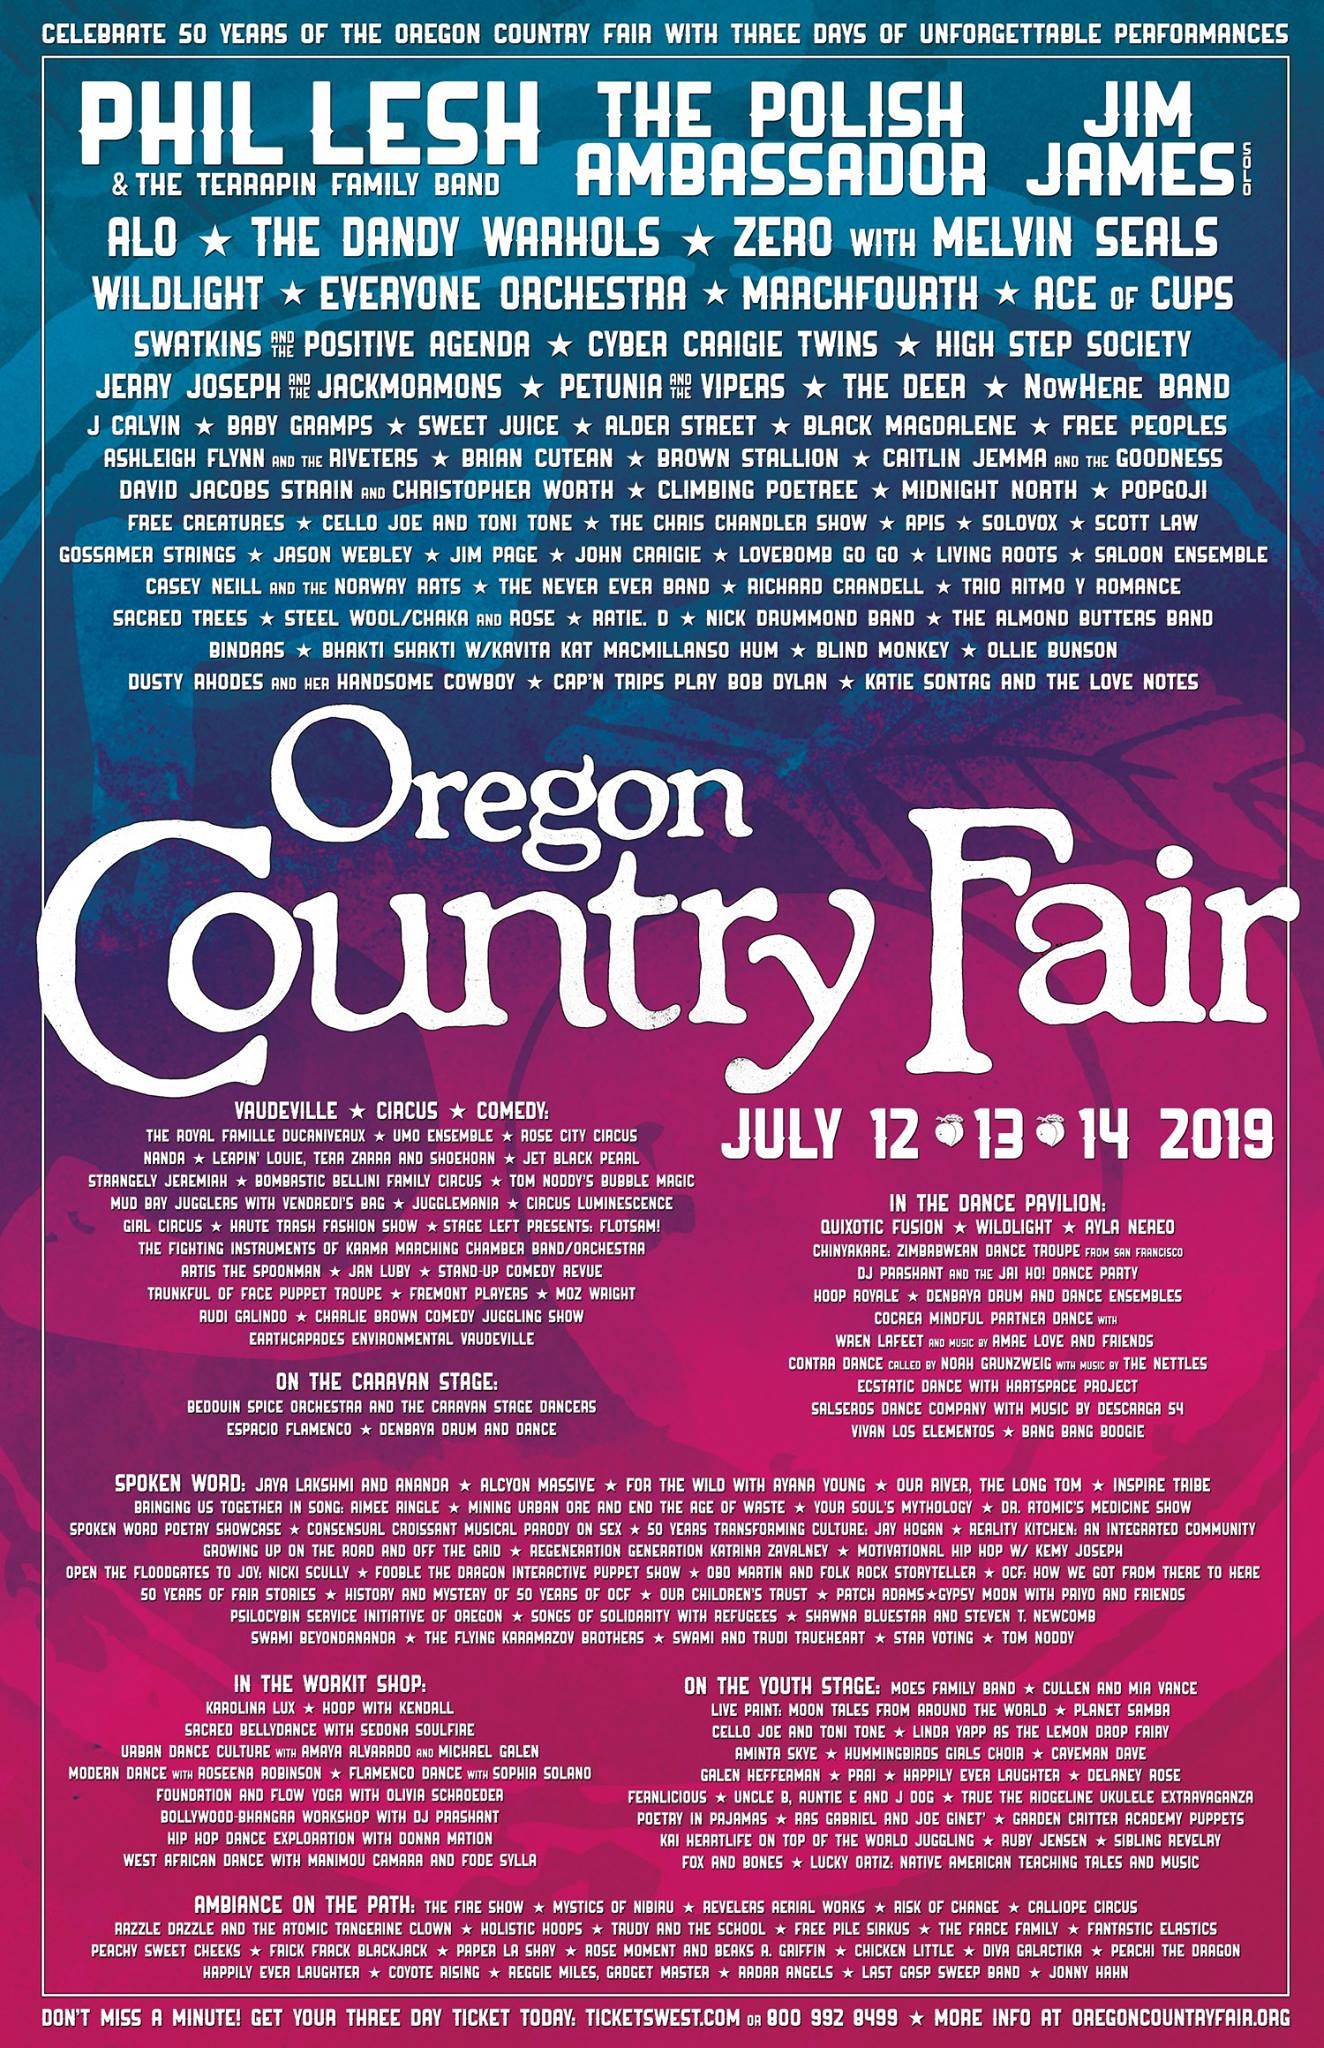 Oregon Country Fair Announces 2019 Lineup: Phil Lesh & The